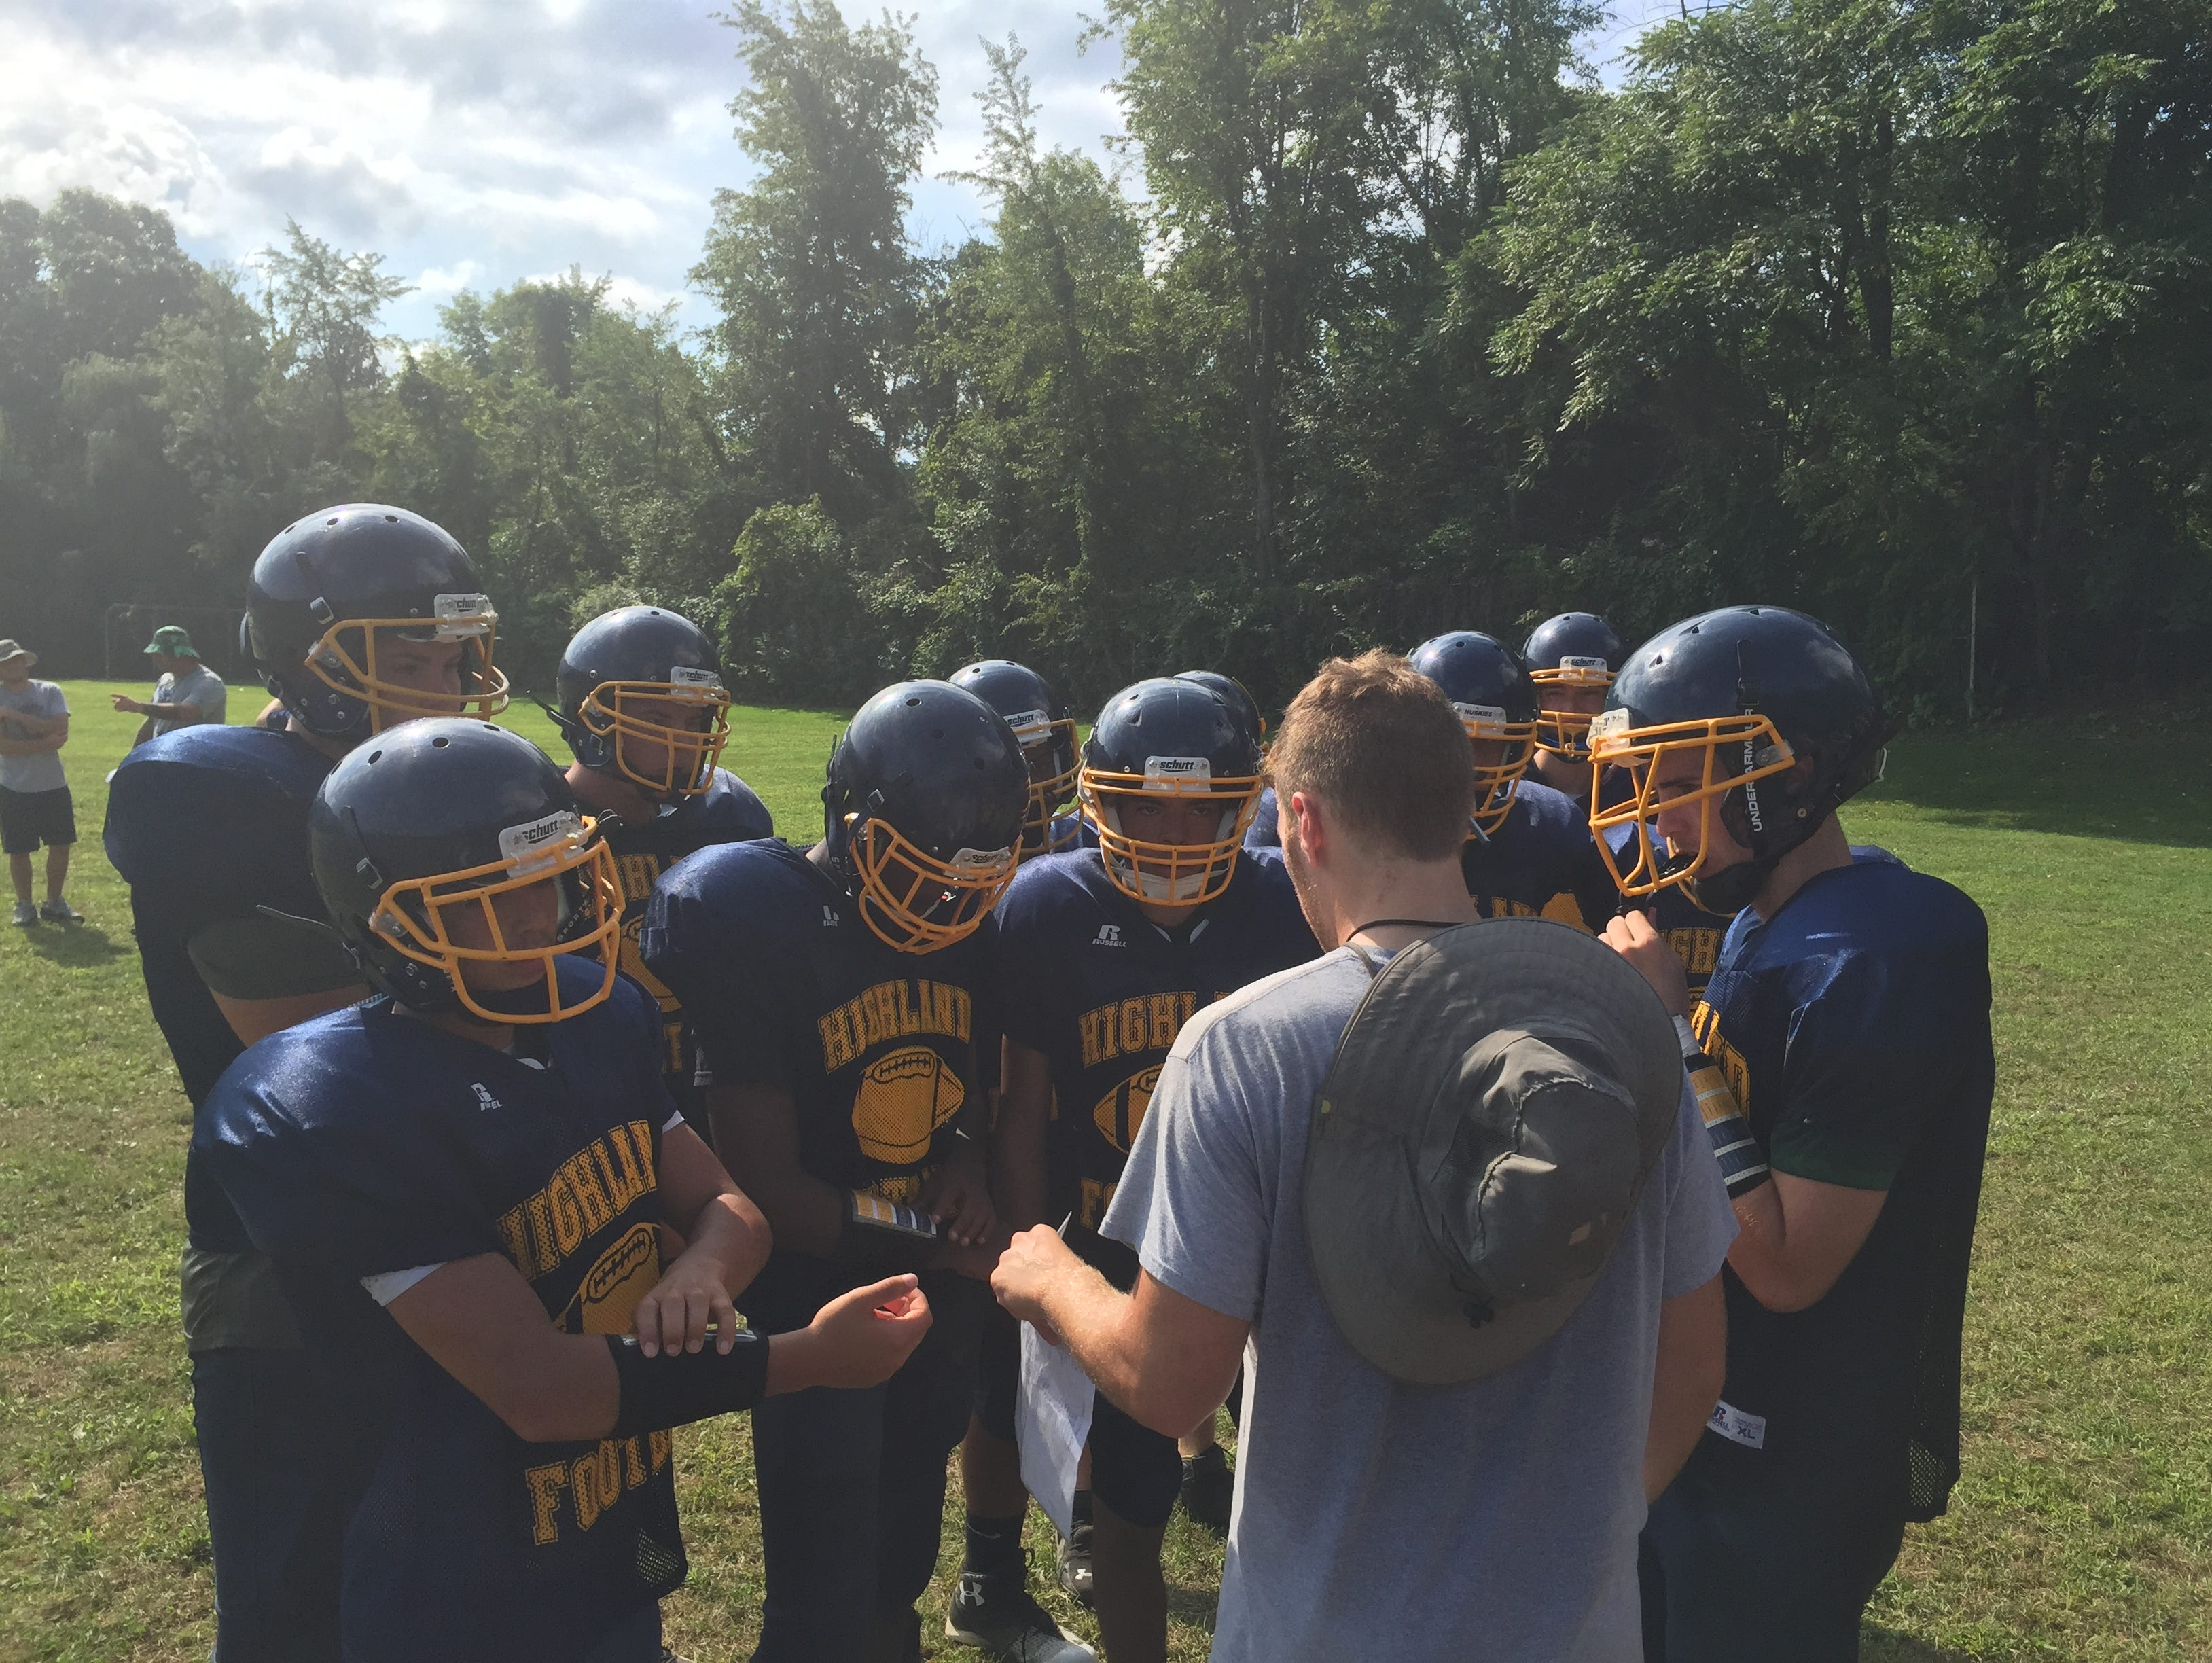 Members of the Highland High School football team huddle with offensive coordinator Tom Truscello.